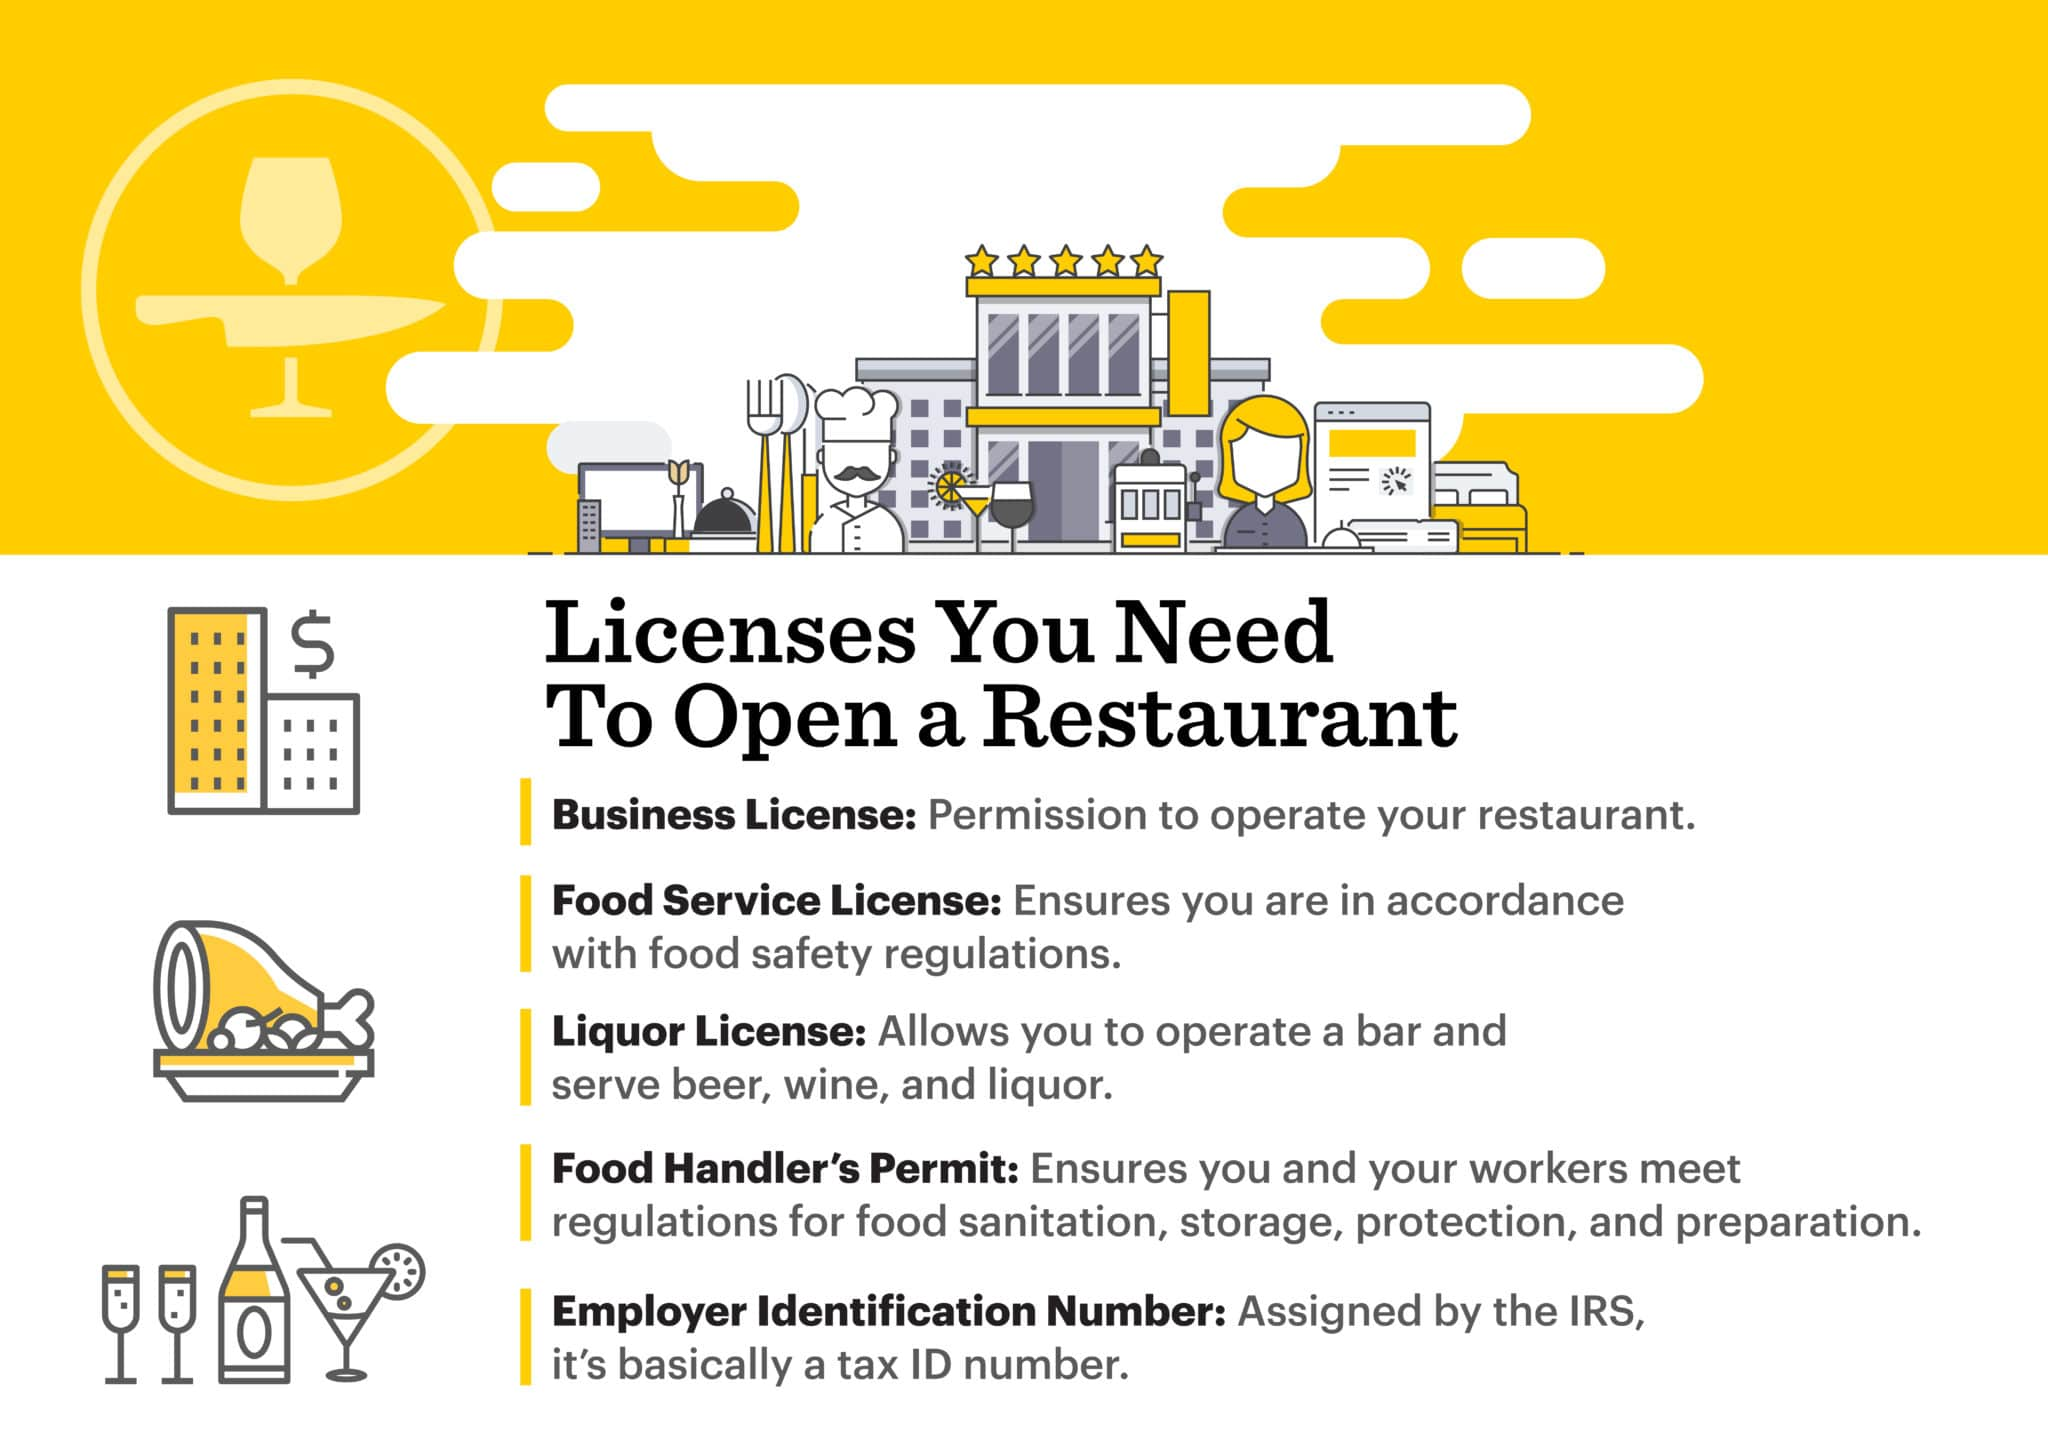 Concession Stand Worker Cover Letter Restaurant Licenses And Permits You Need To Open